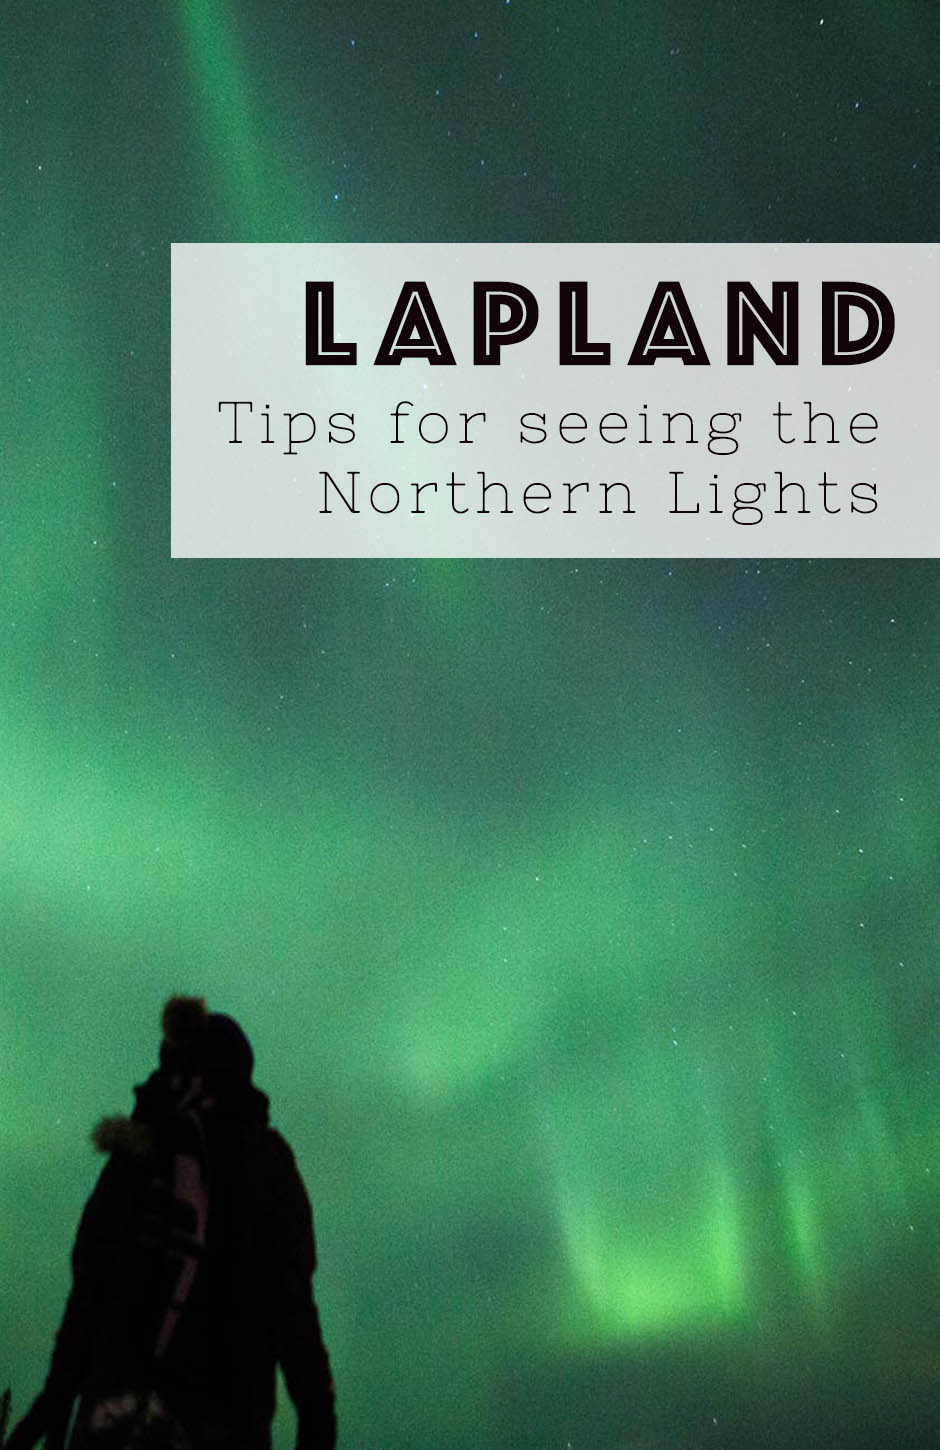 Tips for seeing the Northern Lights in Lapland, Finland